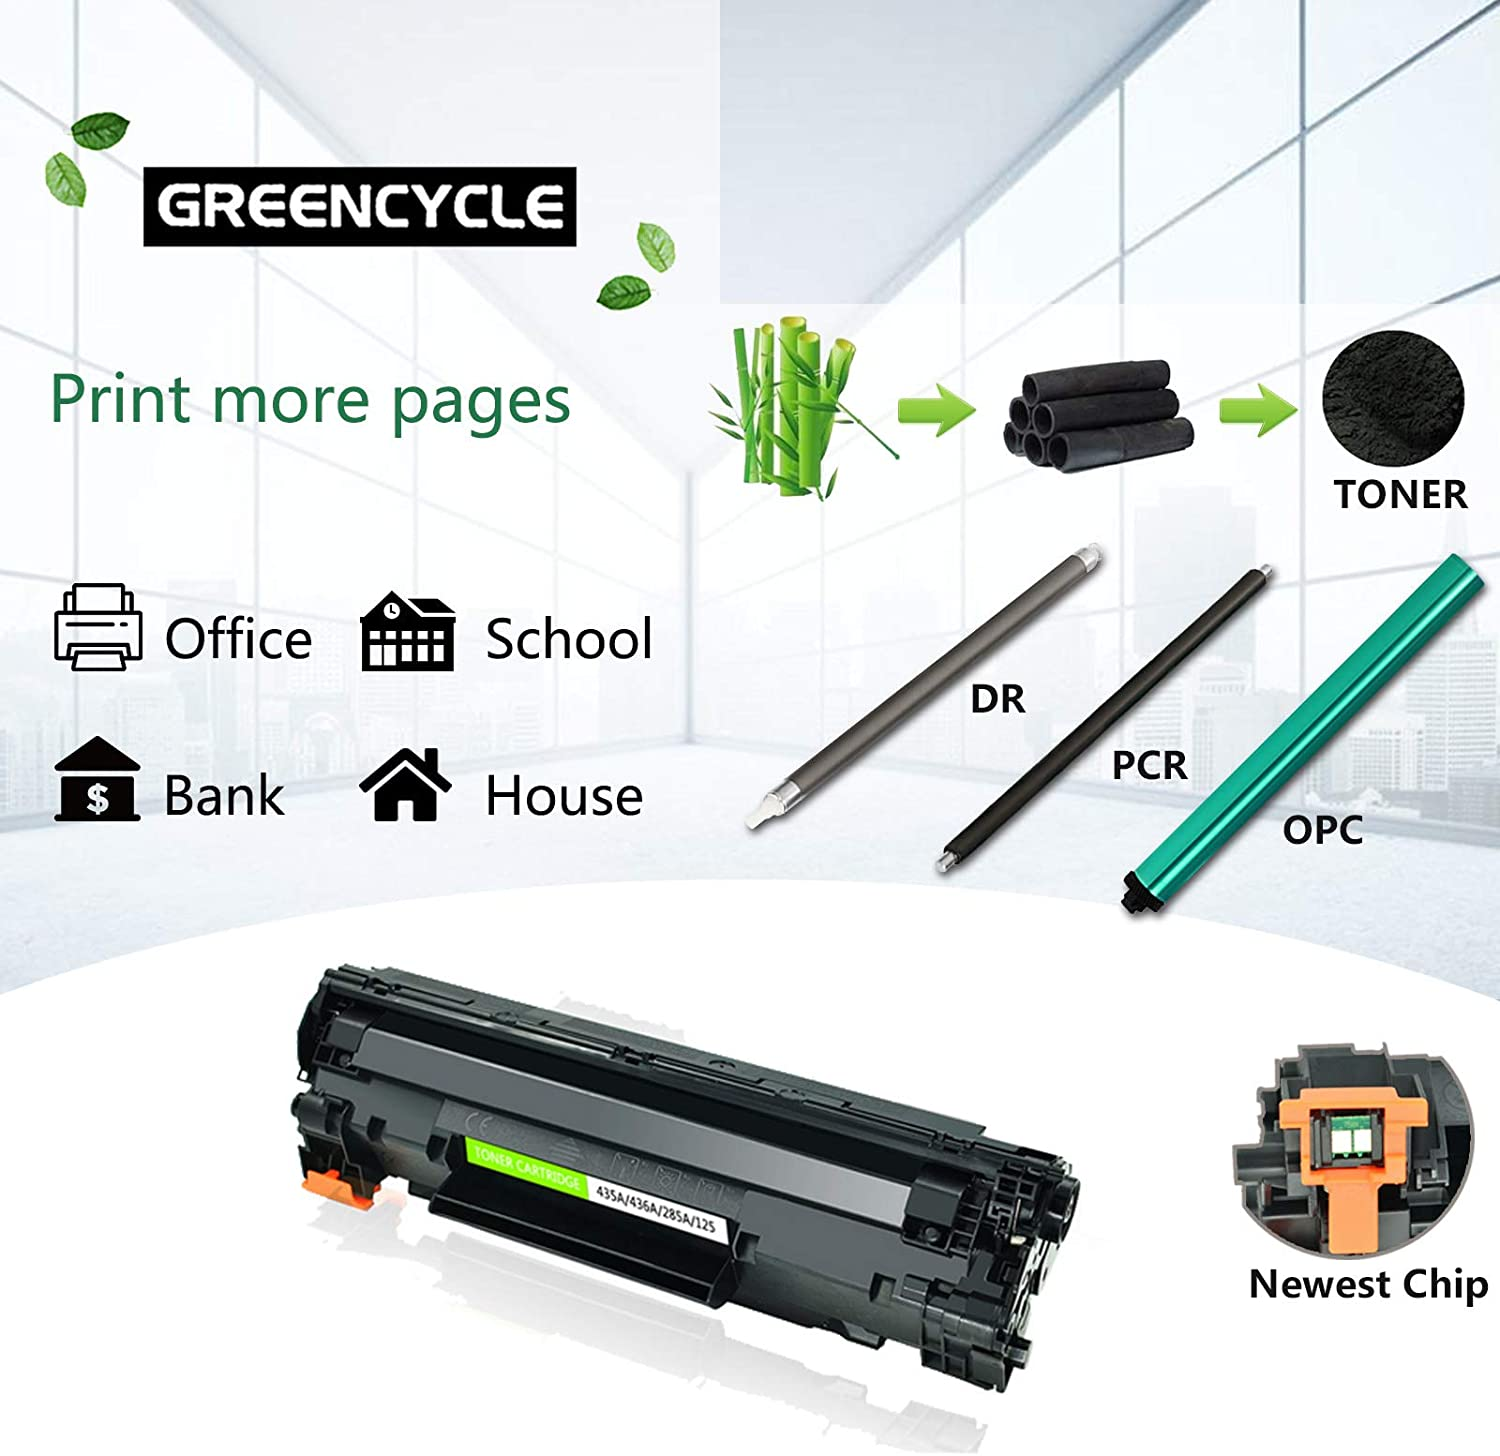 GREENCYCLE 3 Pack Black Cartridge Compatible for HP 85A CE285A CE285 Toner Cartridge for Laserjet Pro P1102W P1102 P1100 M1212NFW M1212NF M1210 M1132 M1130 Laser Printer